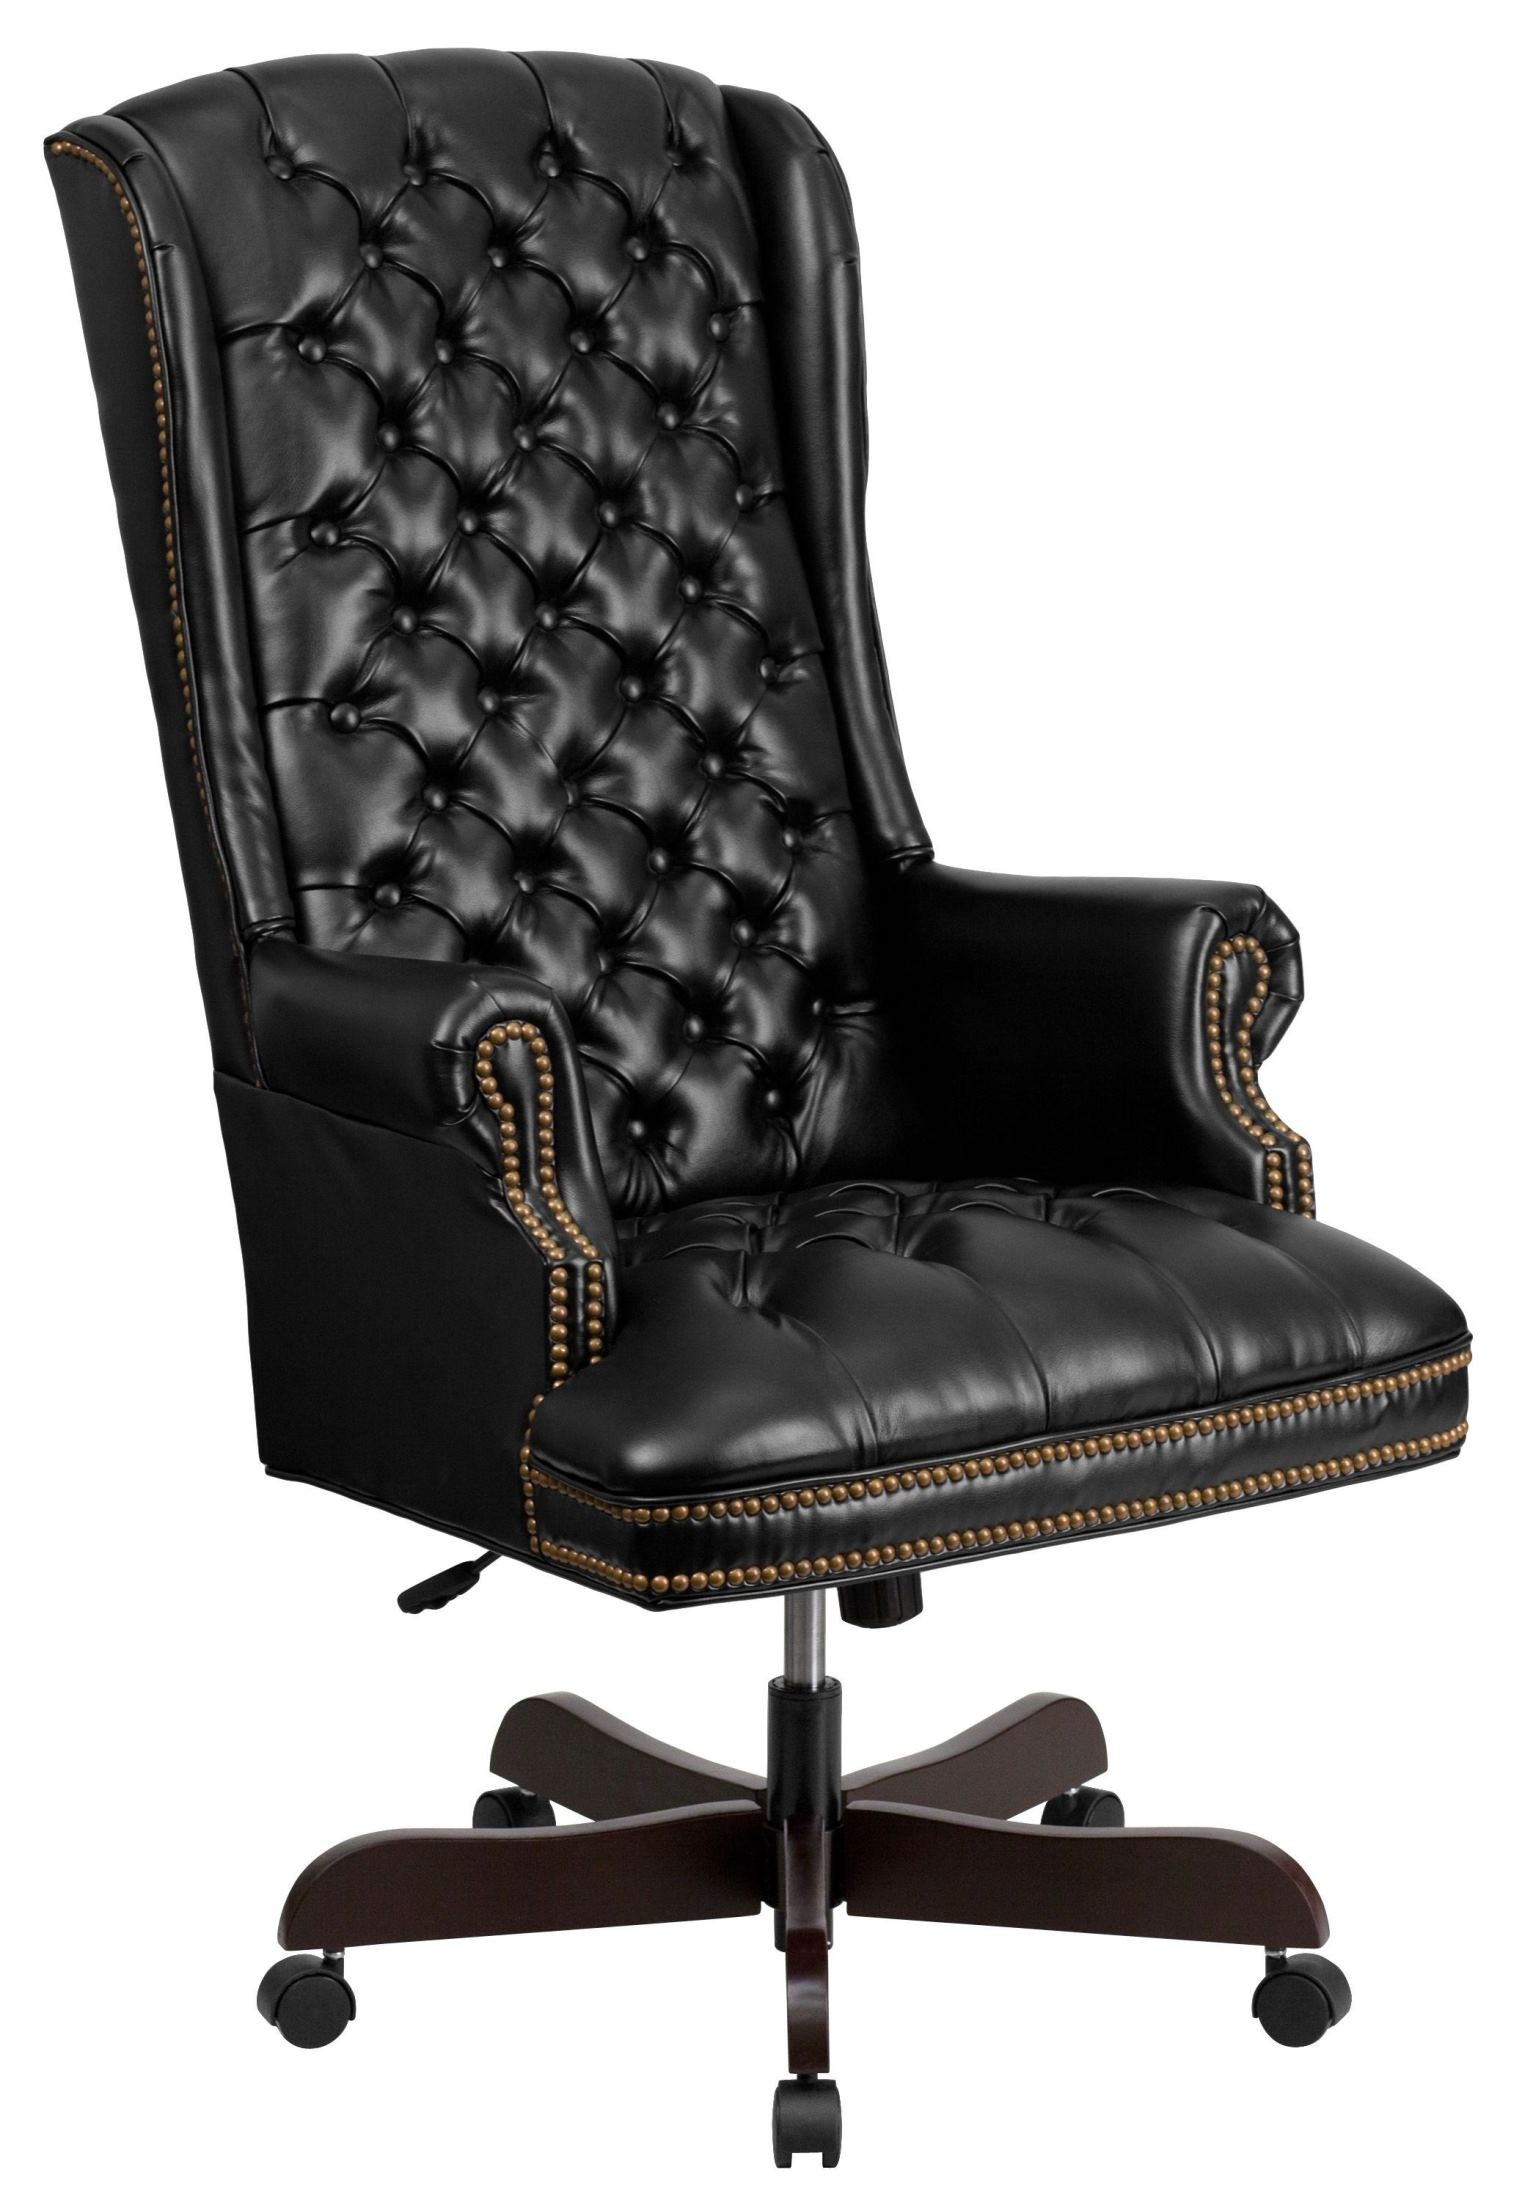 Executive Chair 360 High Back Tufted Black Leather Executive Office Chair